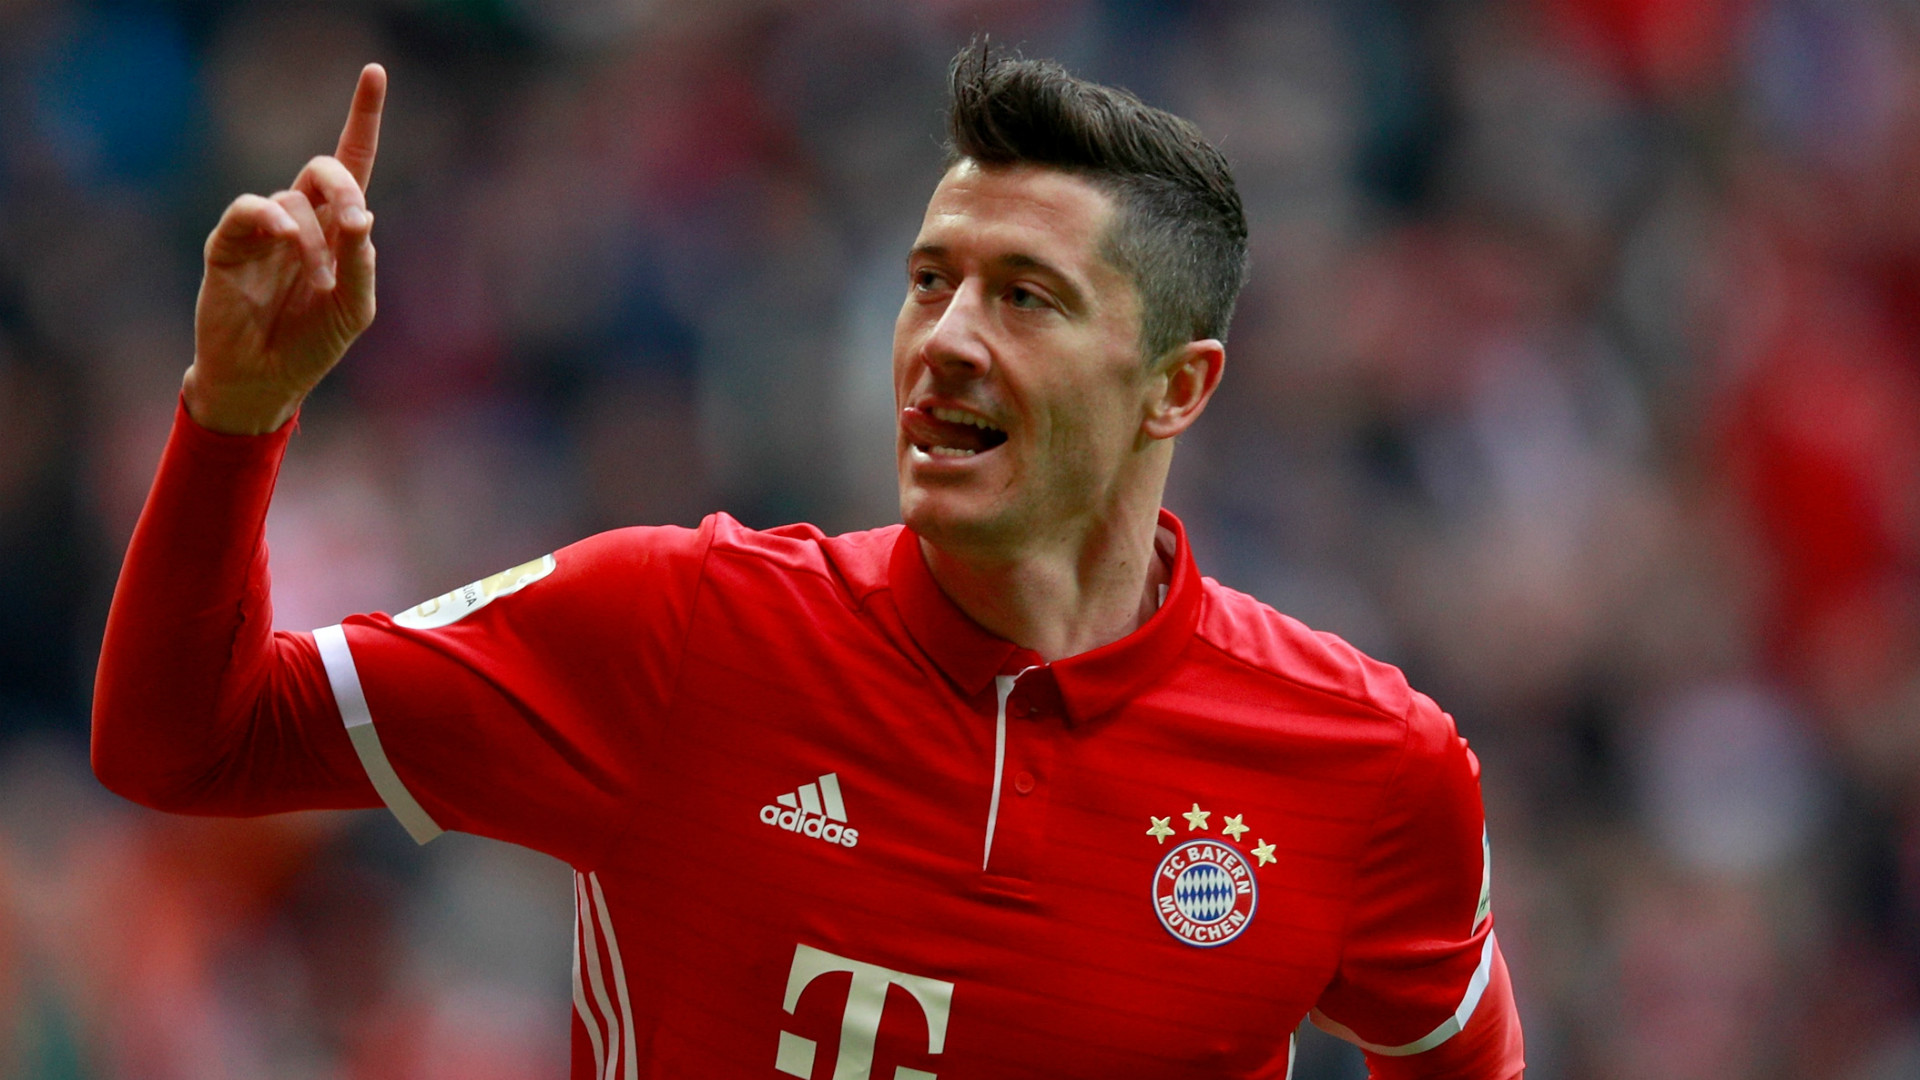 Le Bayern humilie Arsenal, Madrid en position de force — LdC